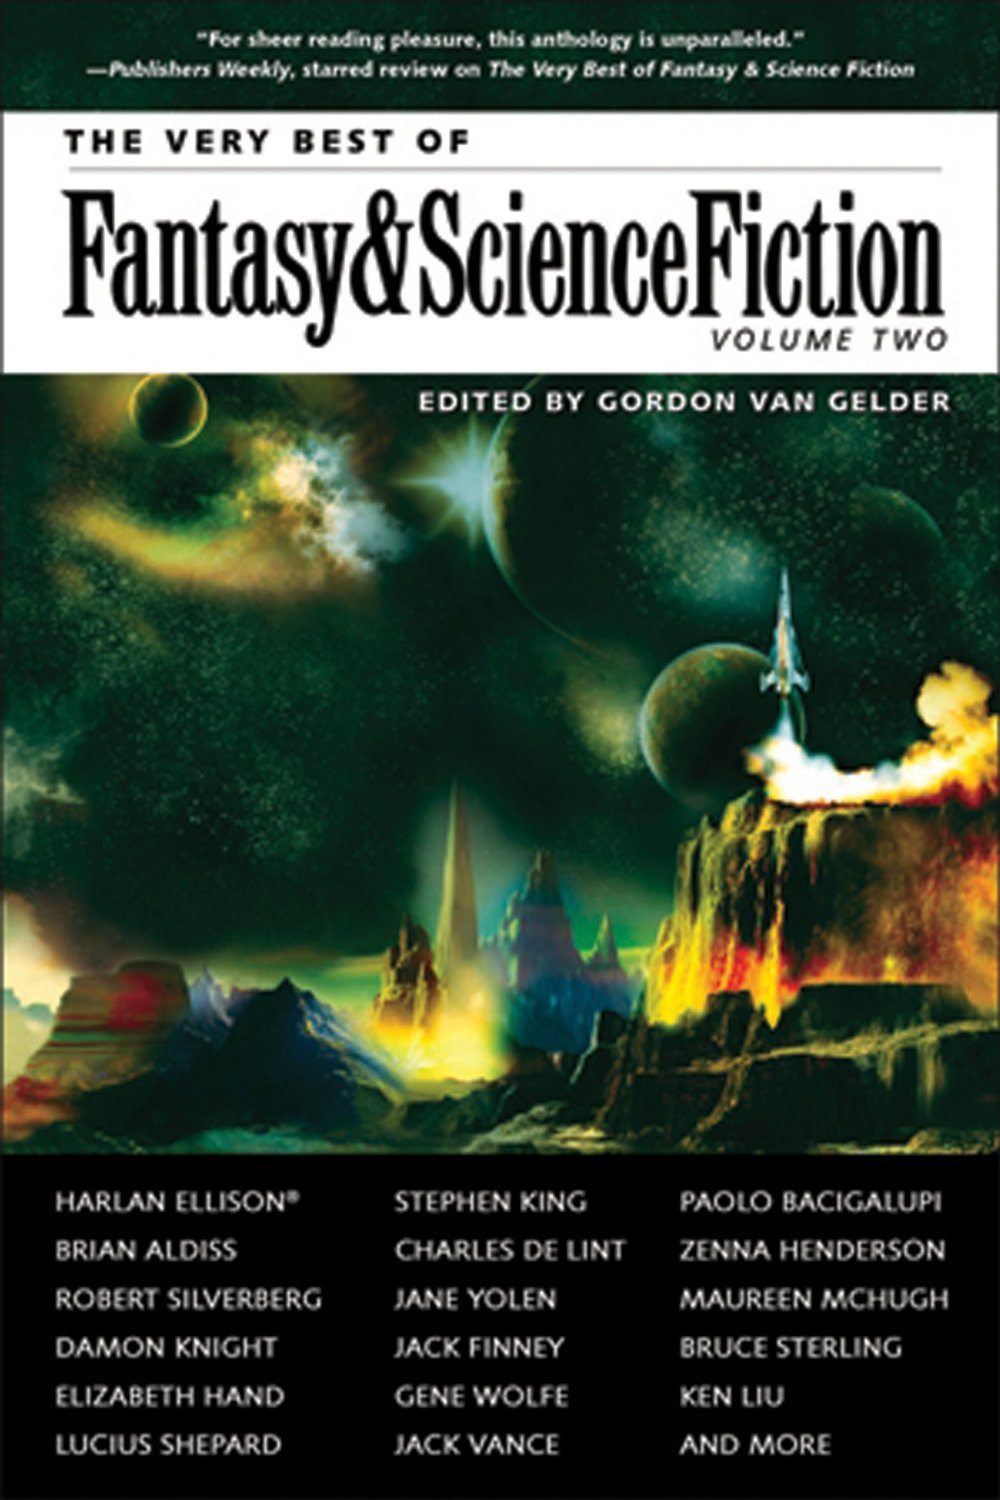 The Very Best of F&SF, Vol II